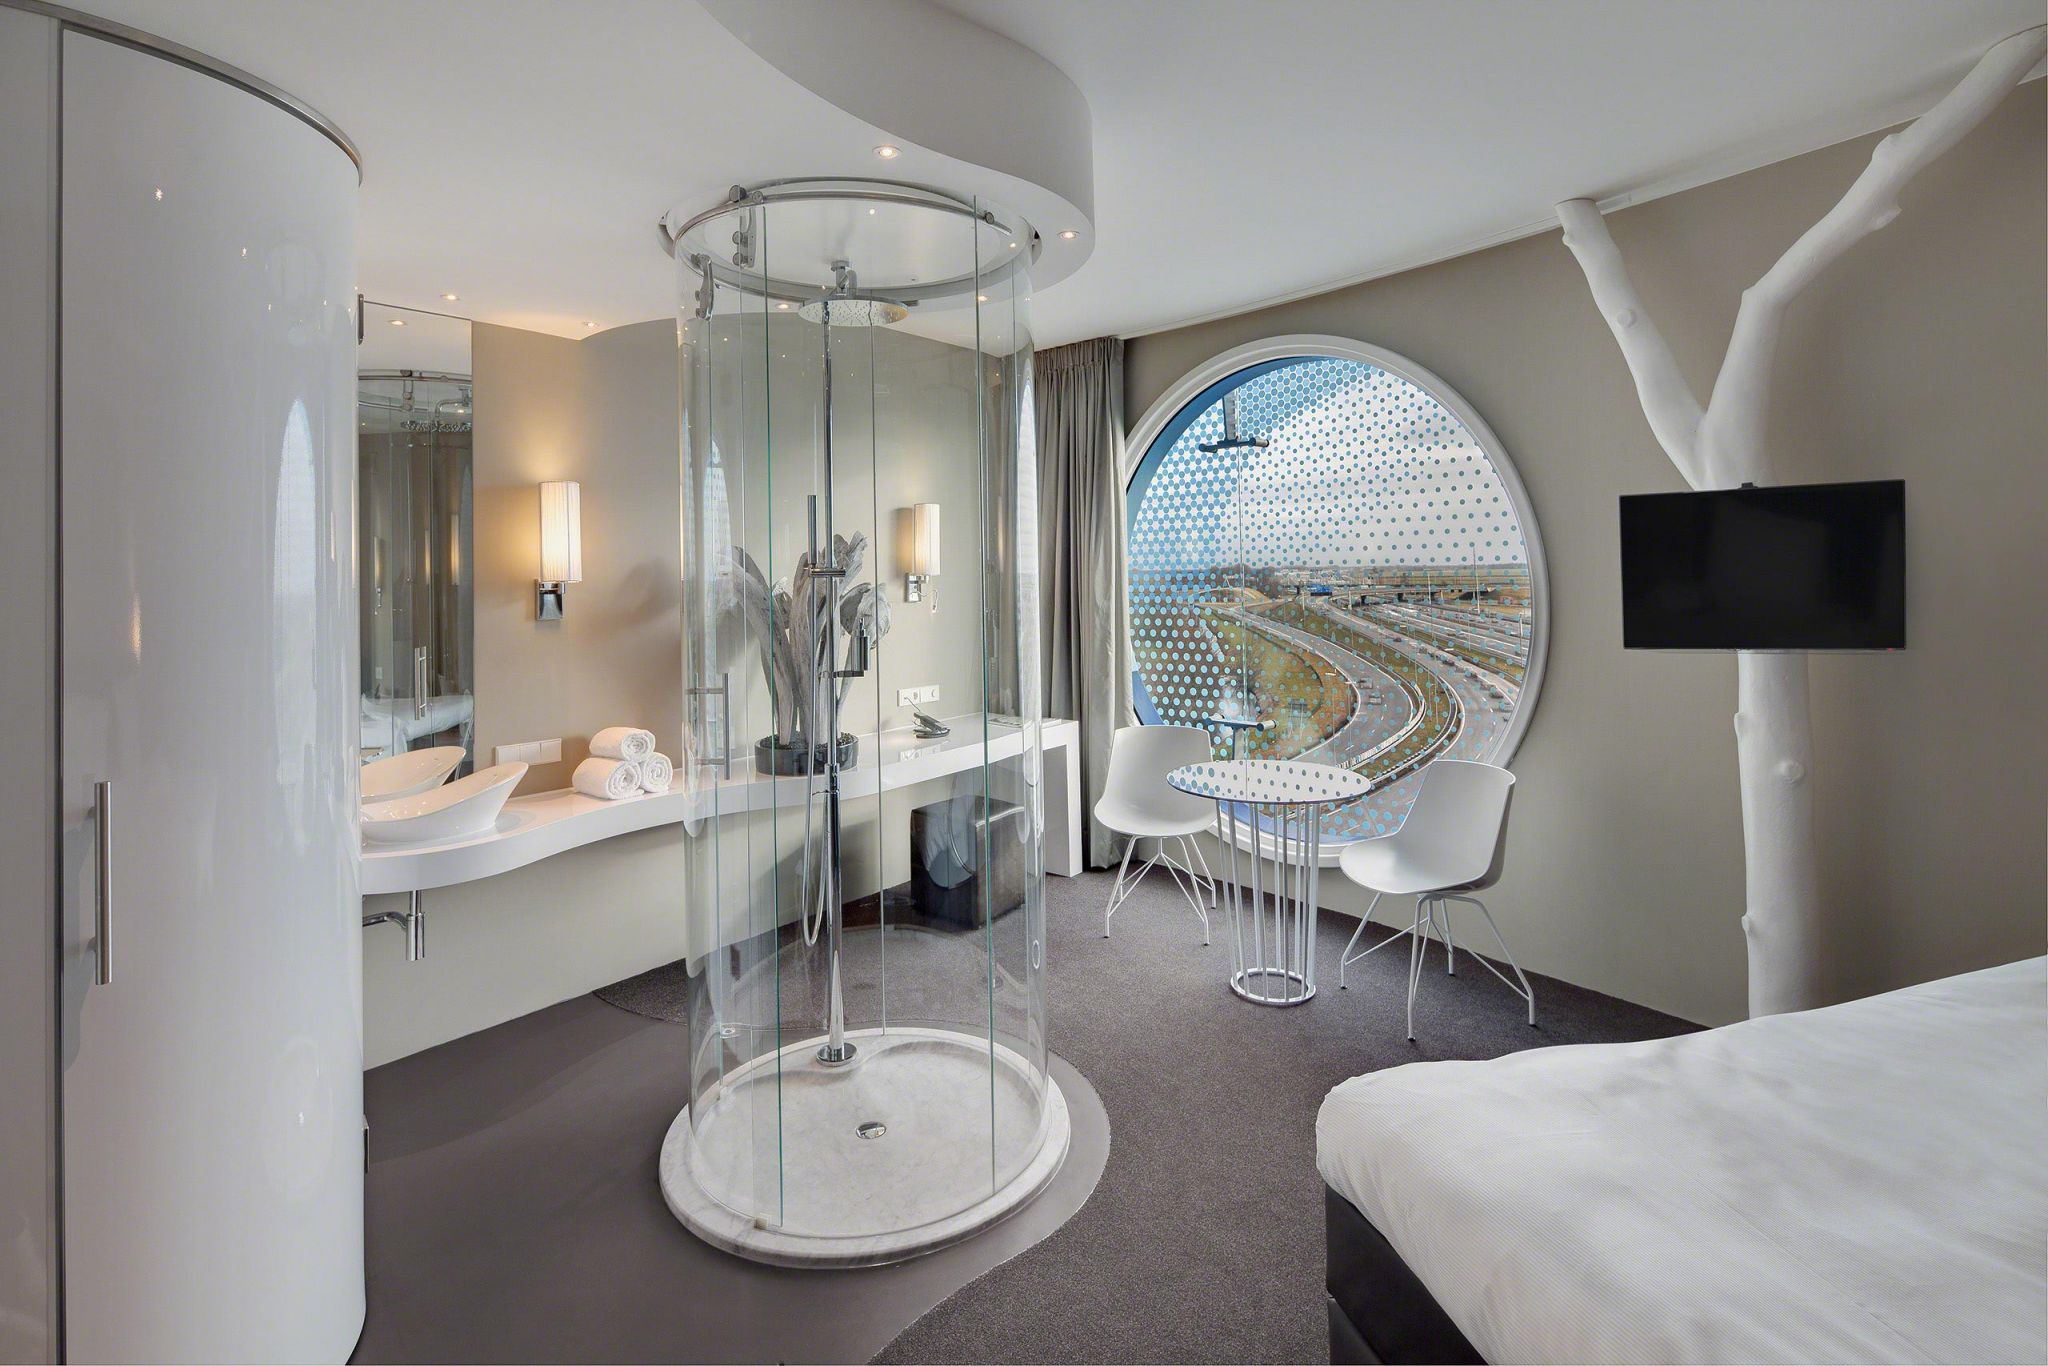 The hotel room design feels like a luxury suite and offers an exclusive bird's-eye view over Amsterdam.